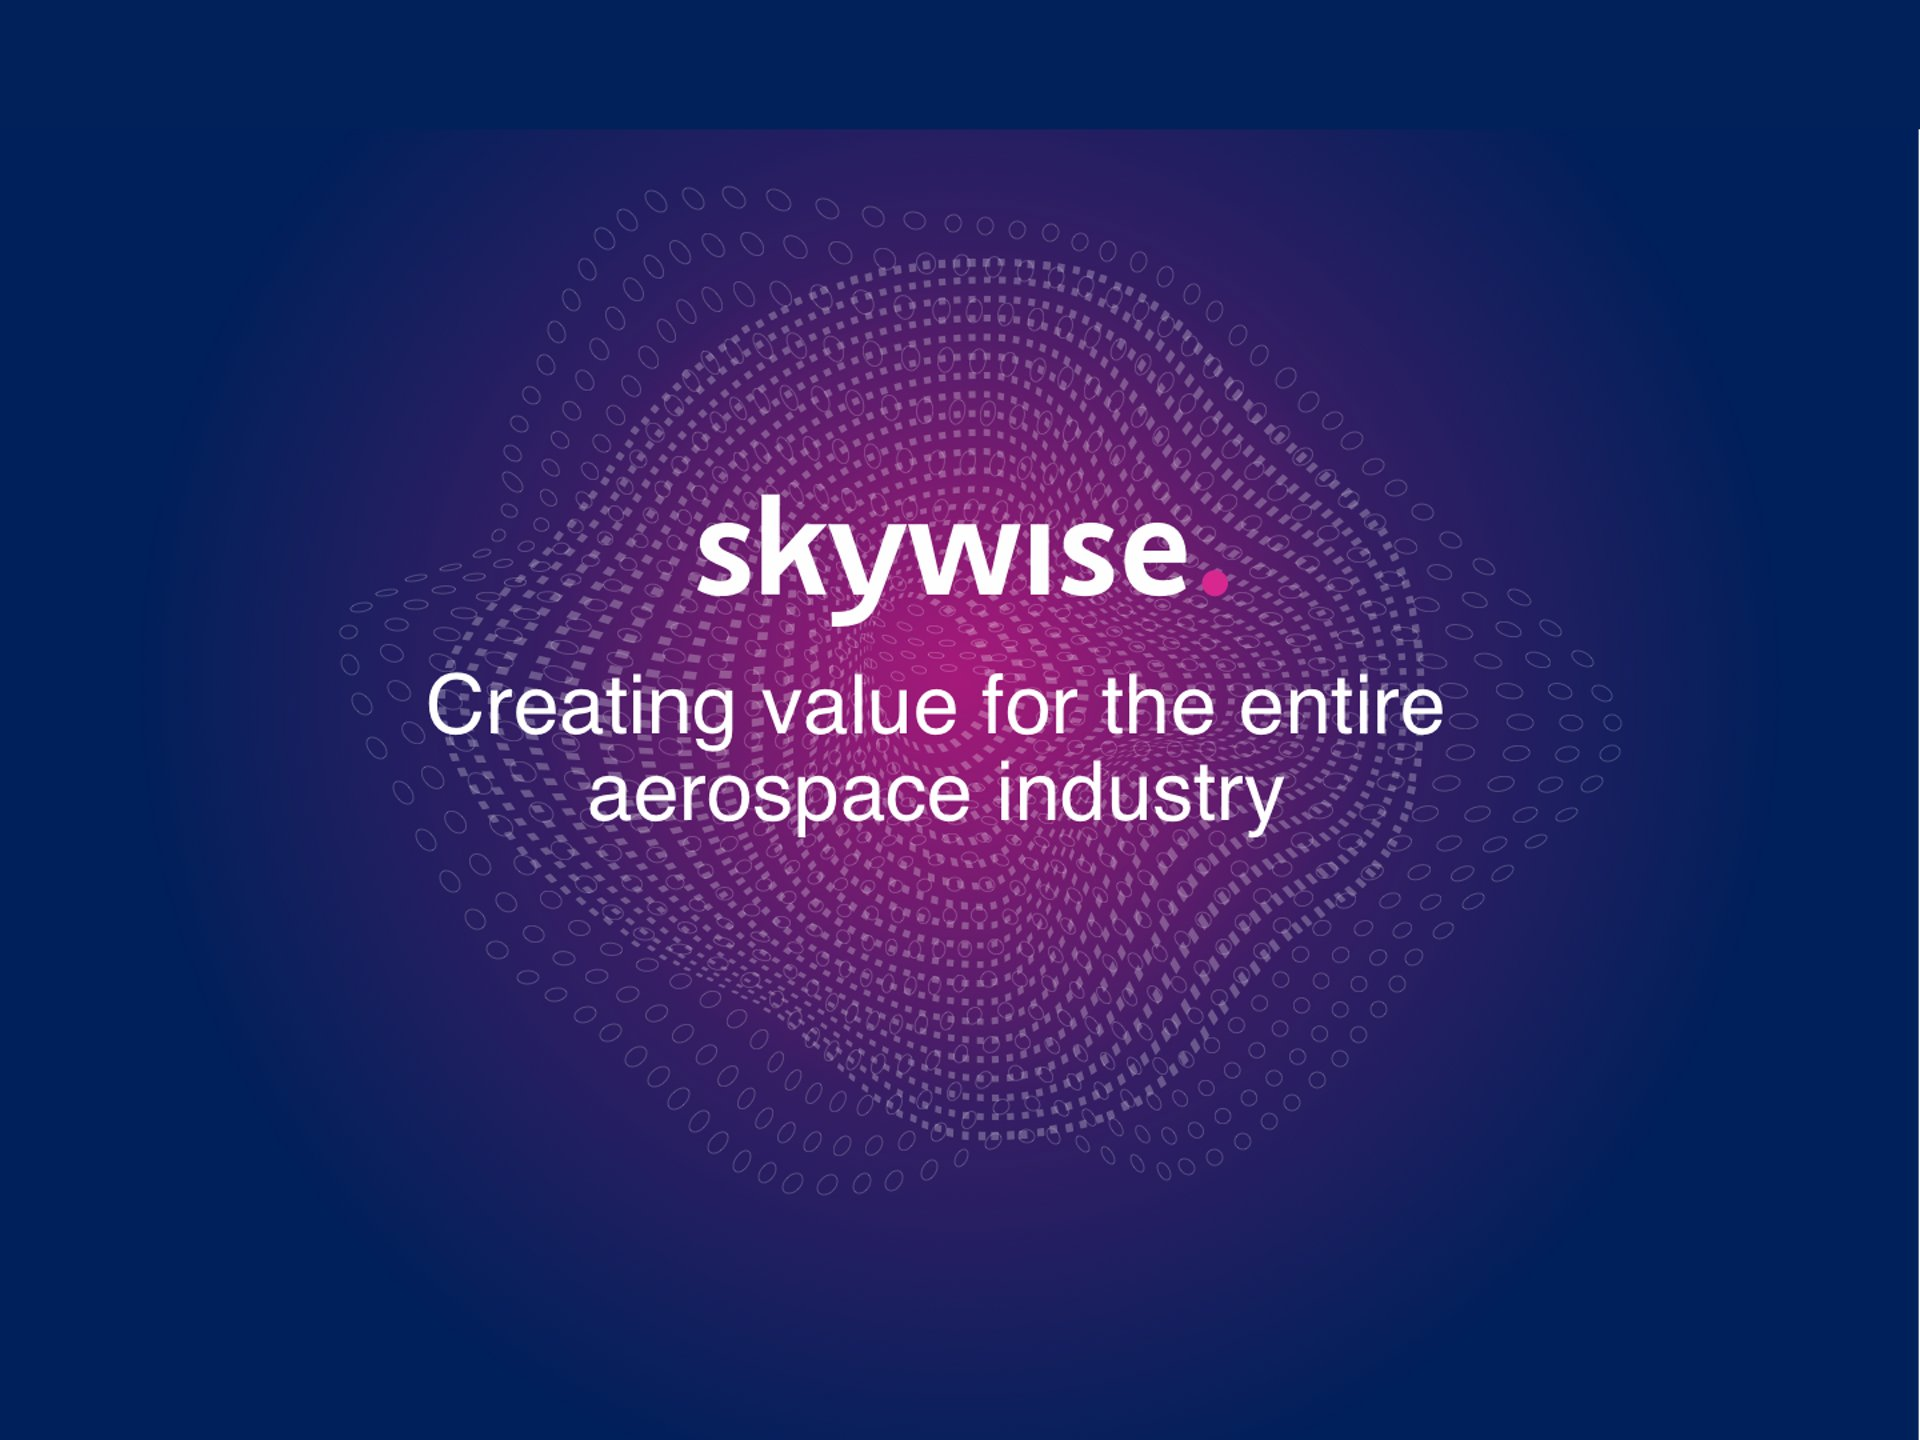 Skywise Creating Value illustration